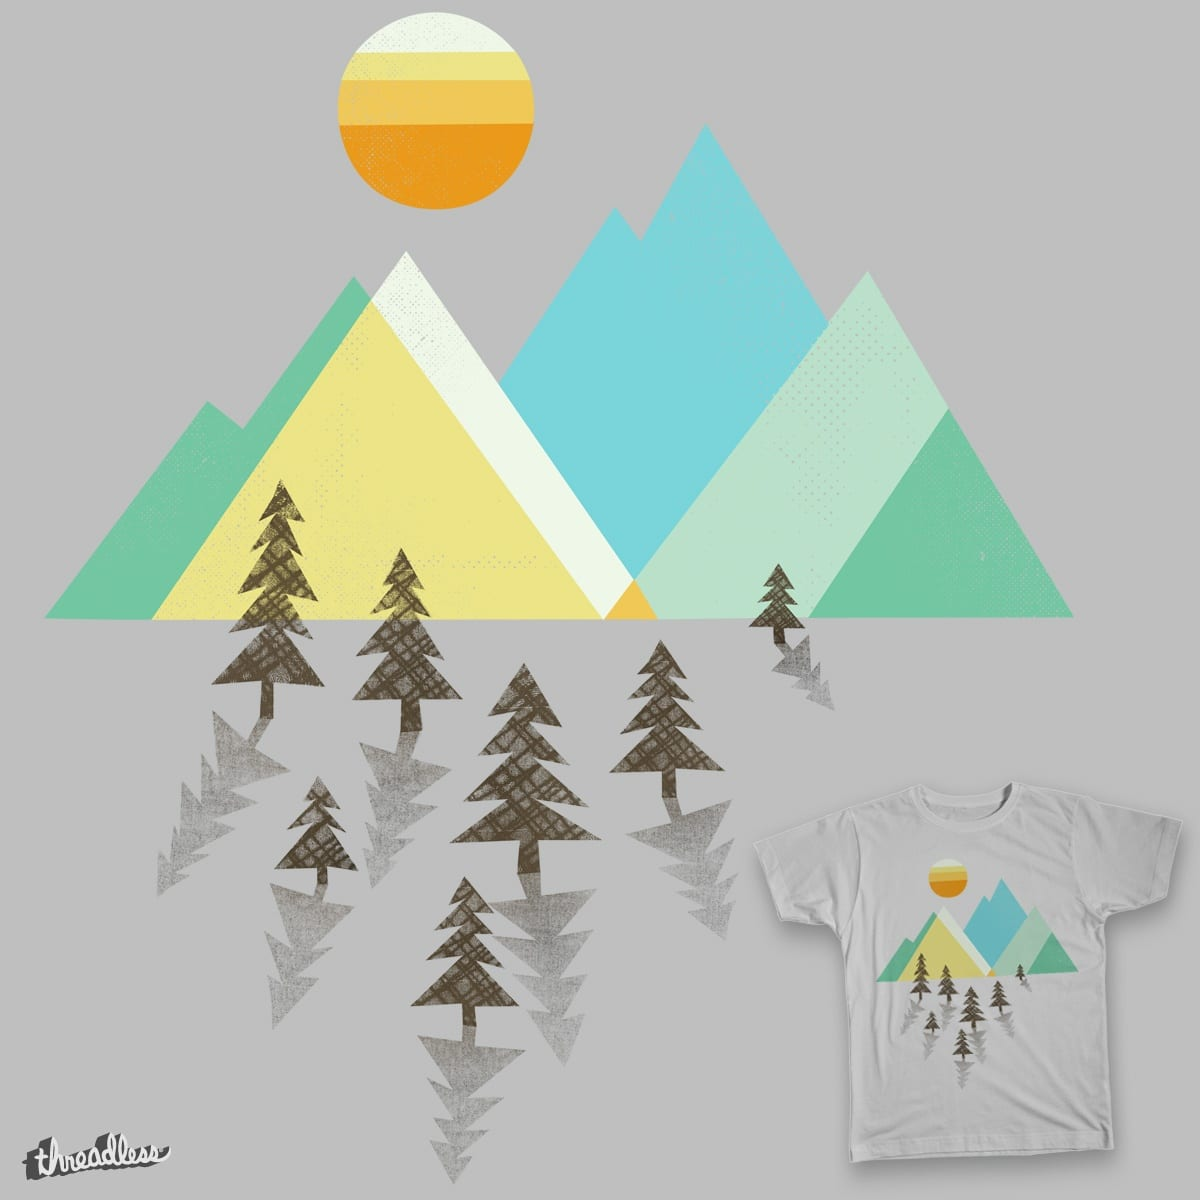 Asphalt Sun by expomonster on Threadless